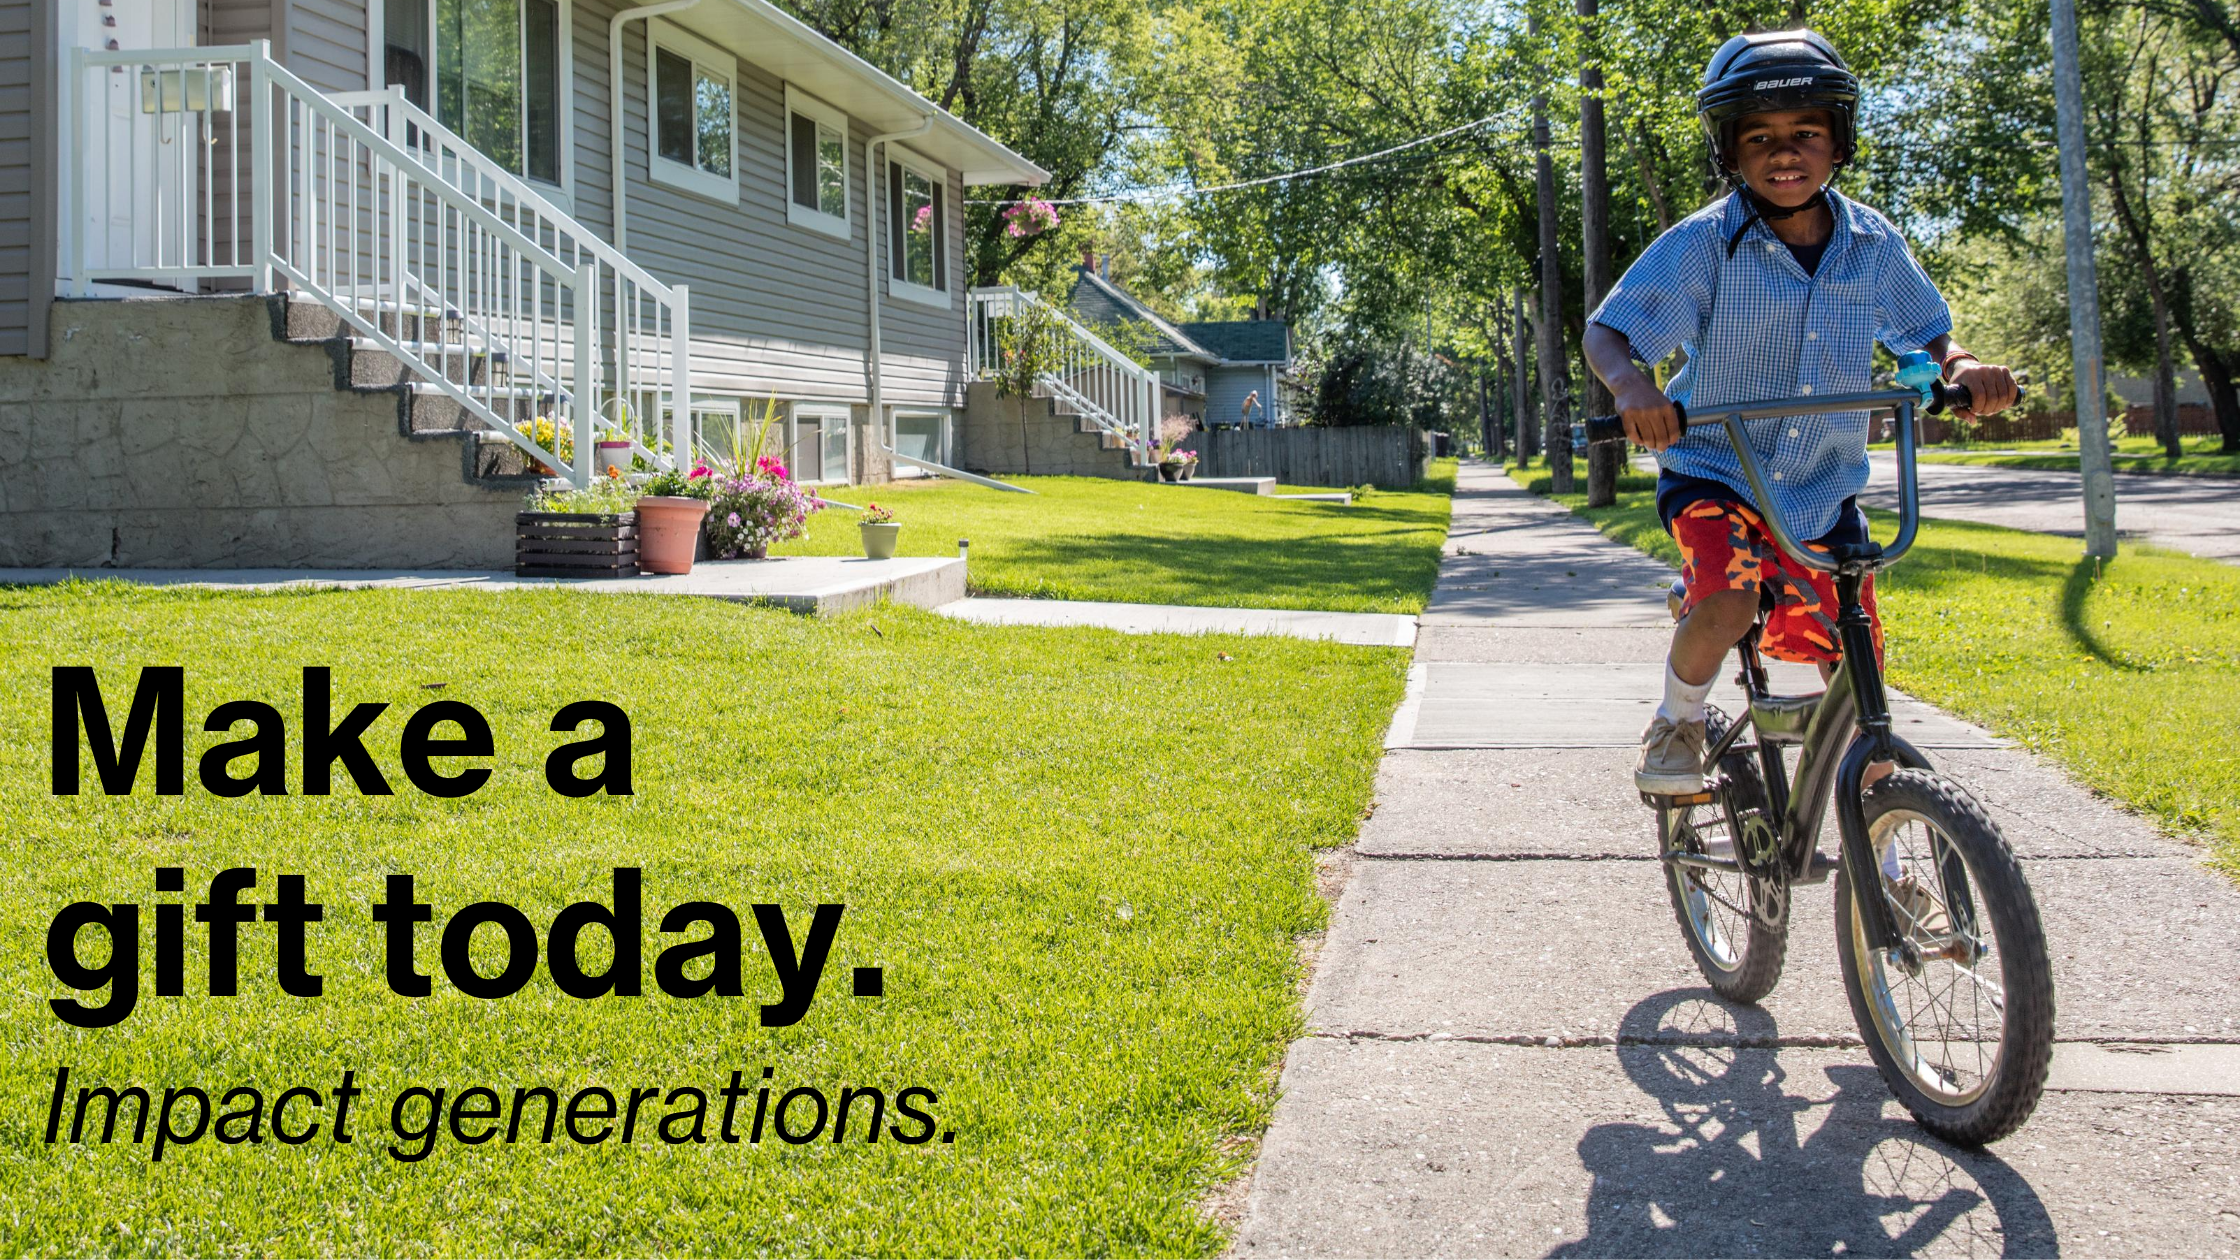 Make a Gift Today. Impact Generations – Boy on Bicycle